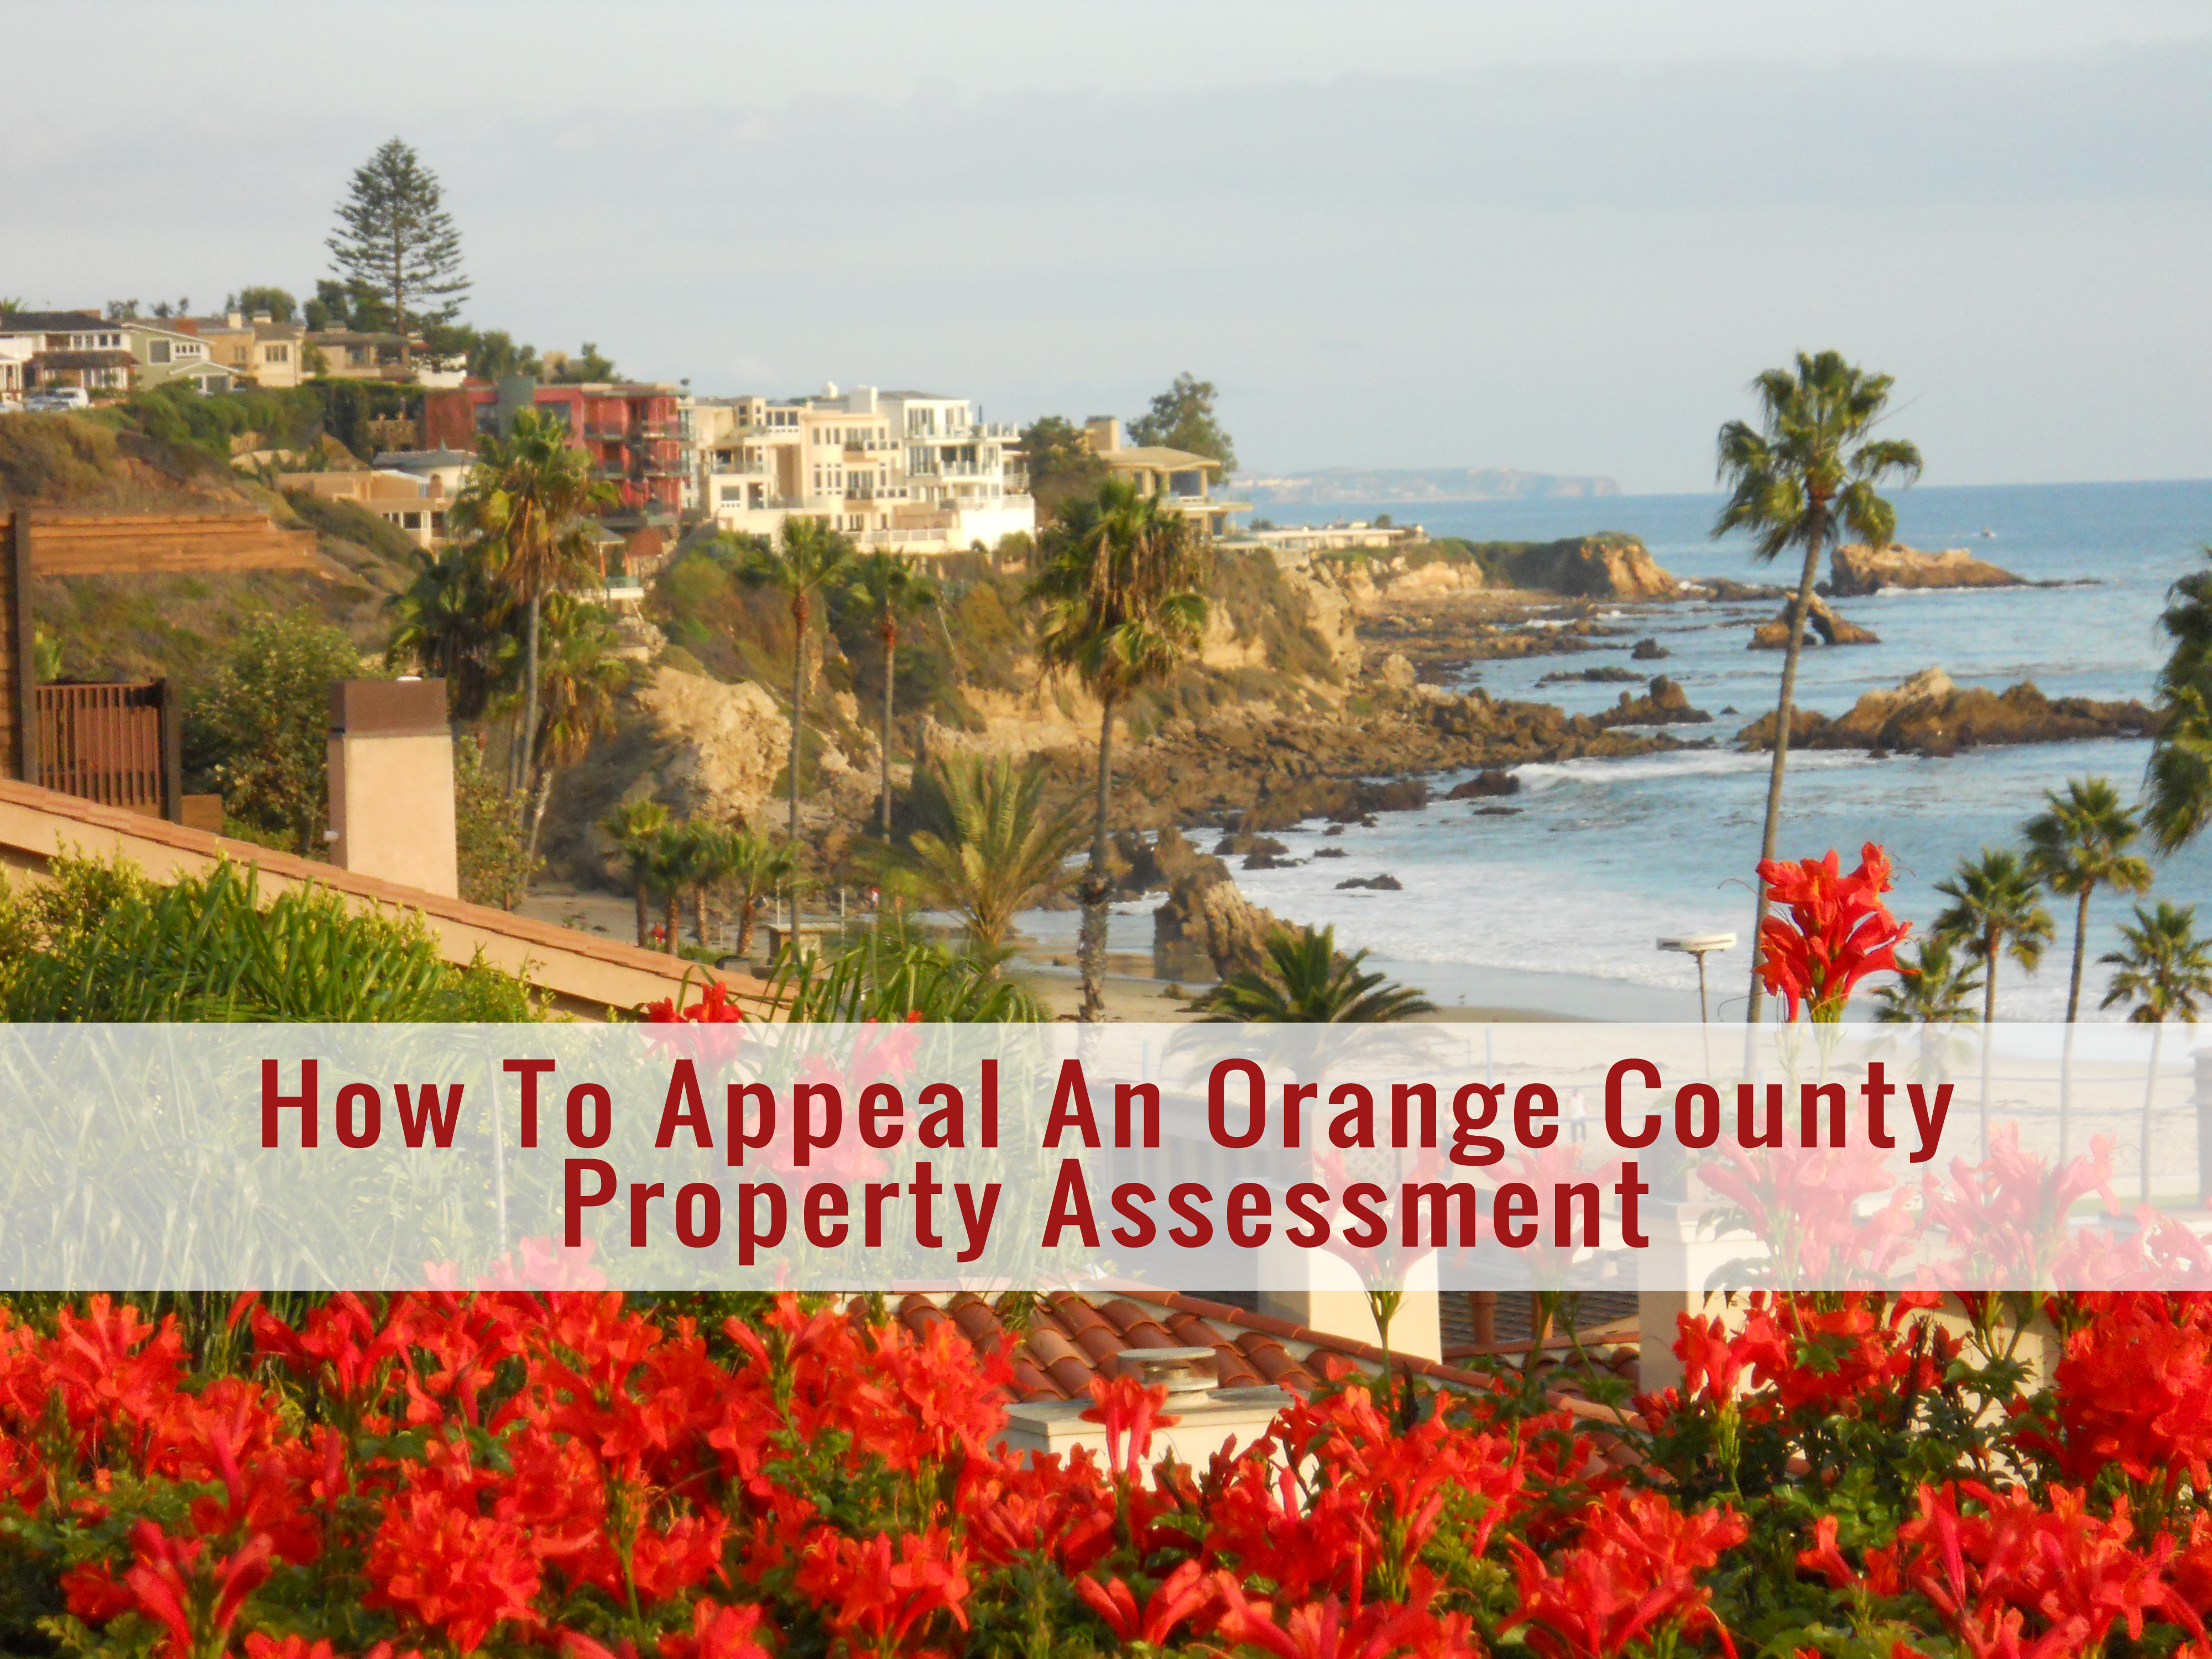 How To Appeal An Orange County Property Assessment